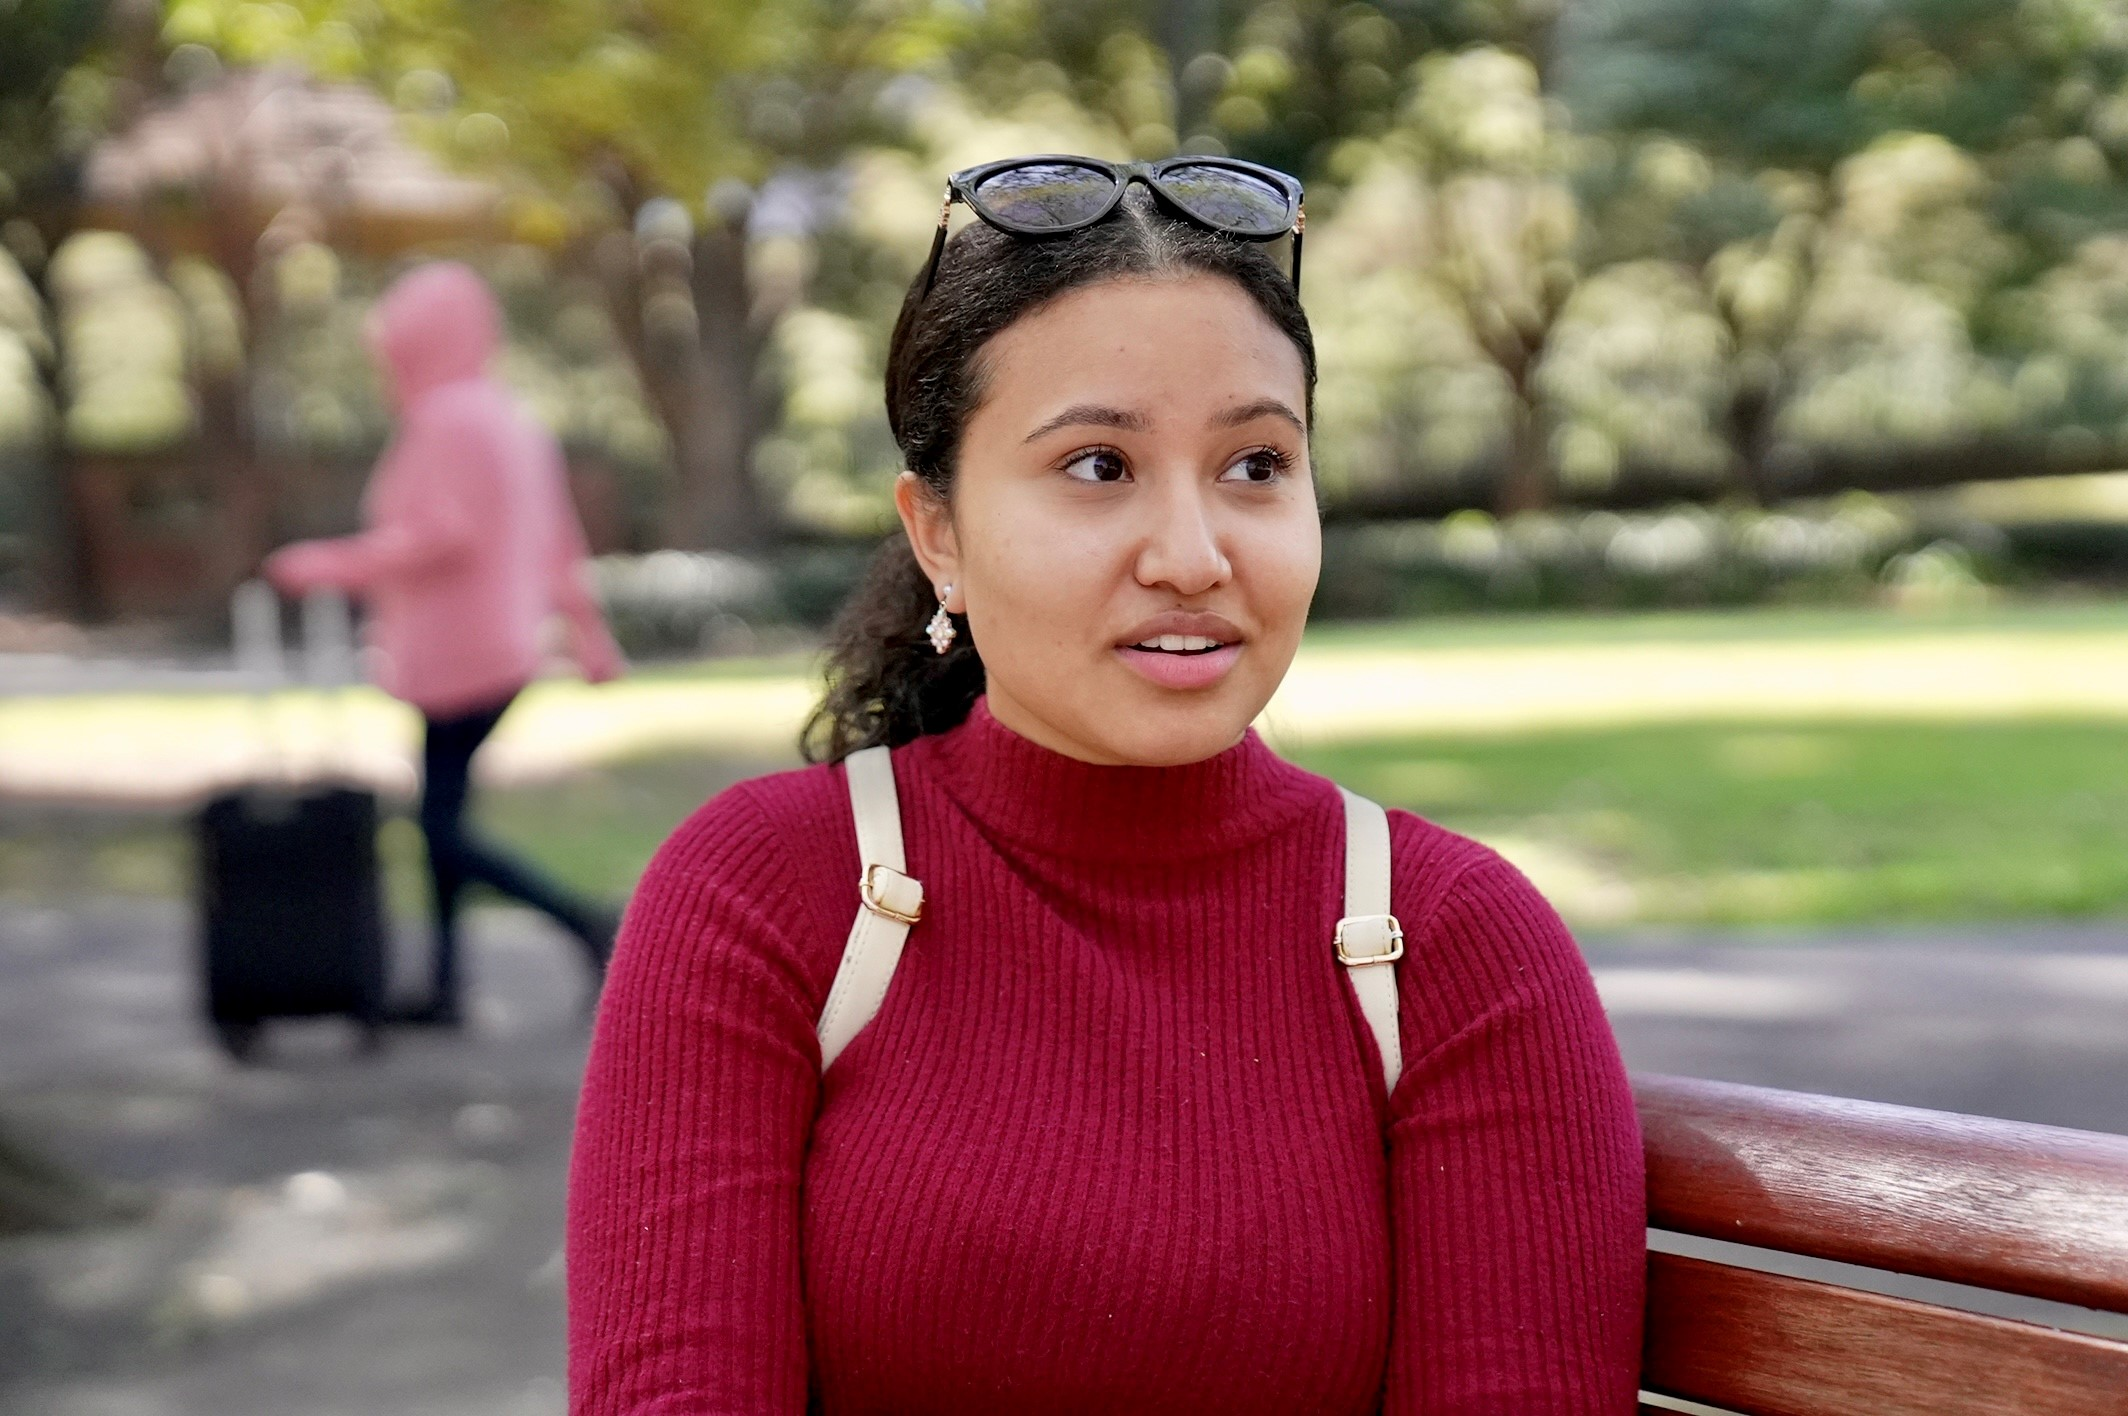 Steffy in a red jumper, sitting on a park bench looking perplexed.